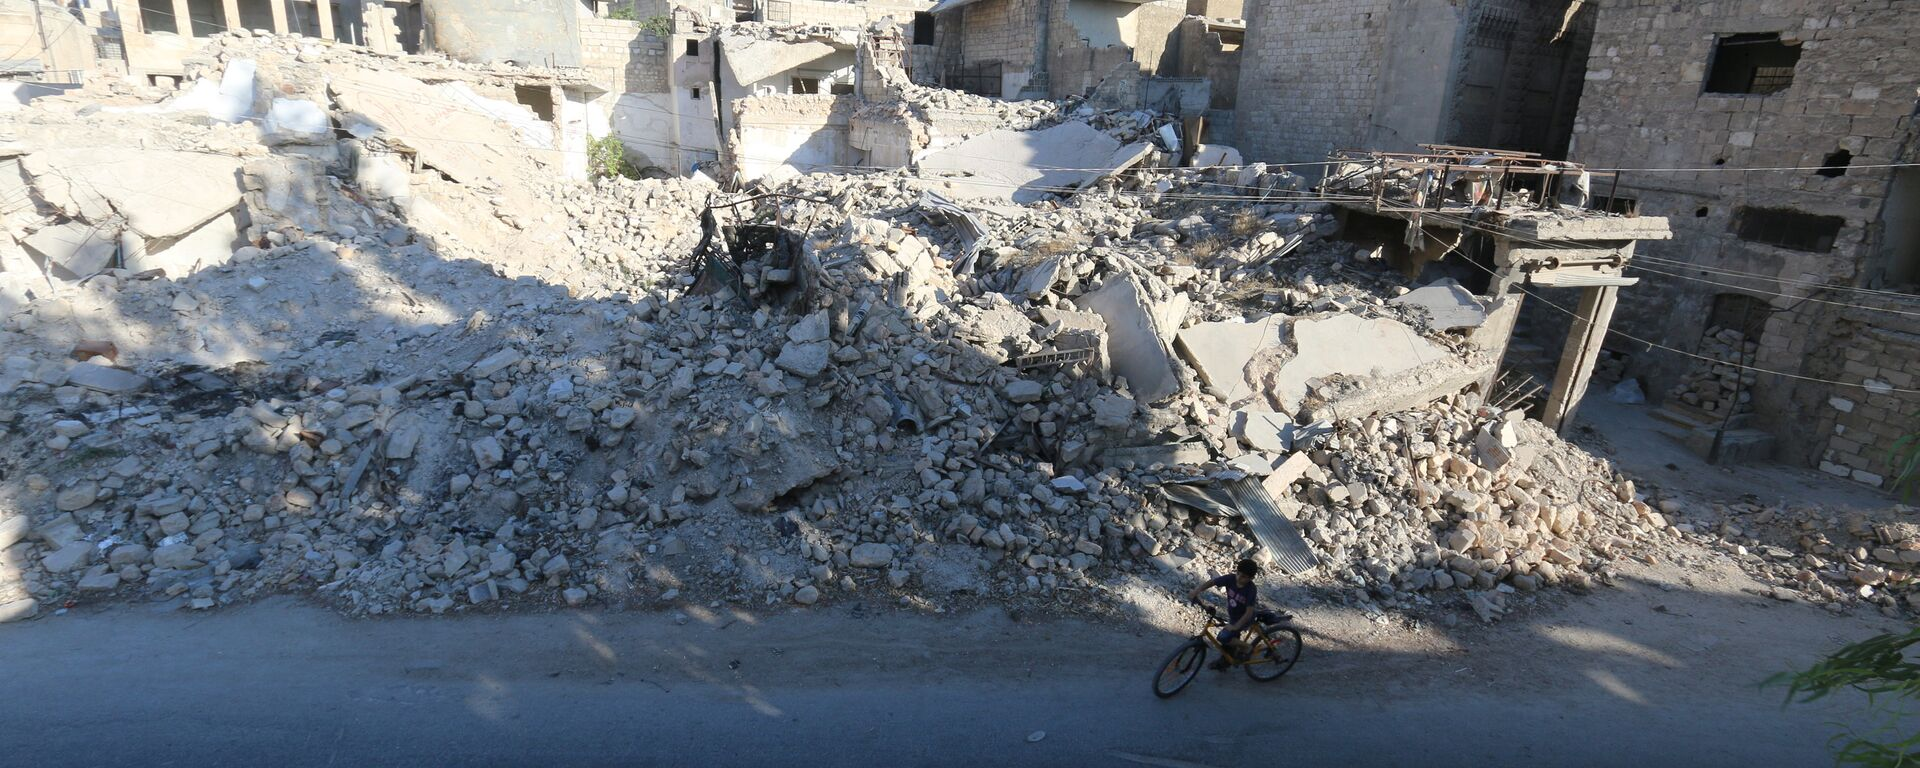 A boy rides a bicycle near rubble of damaged buildings in the rebel held al-Maadi district of Aleppo, Syria, August 31, 2016 - Sputnik Mundo, 1920, 01.06.2021